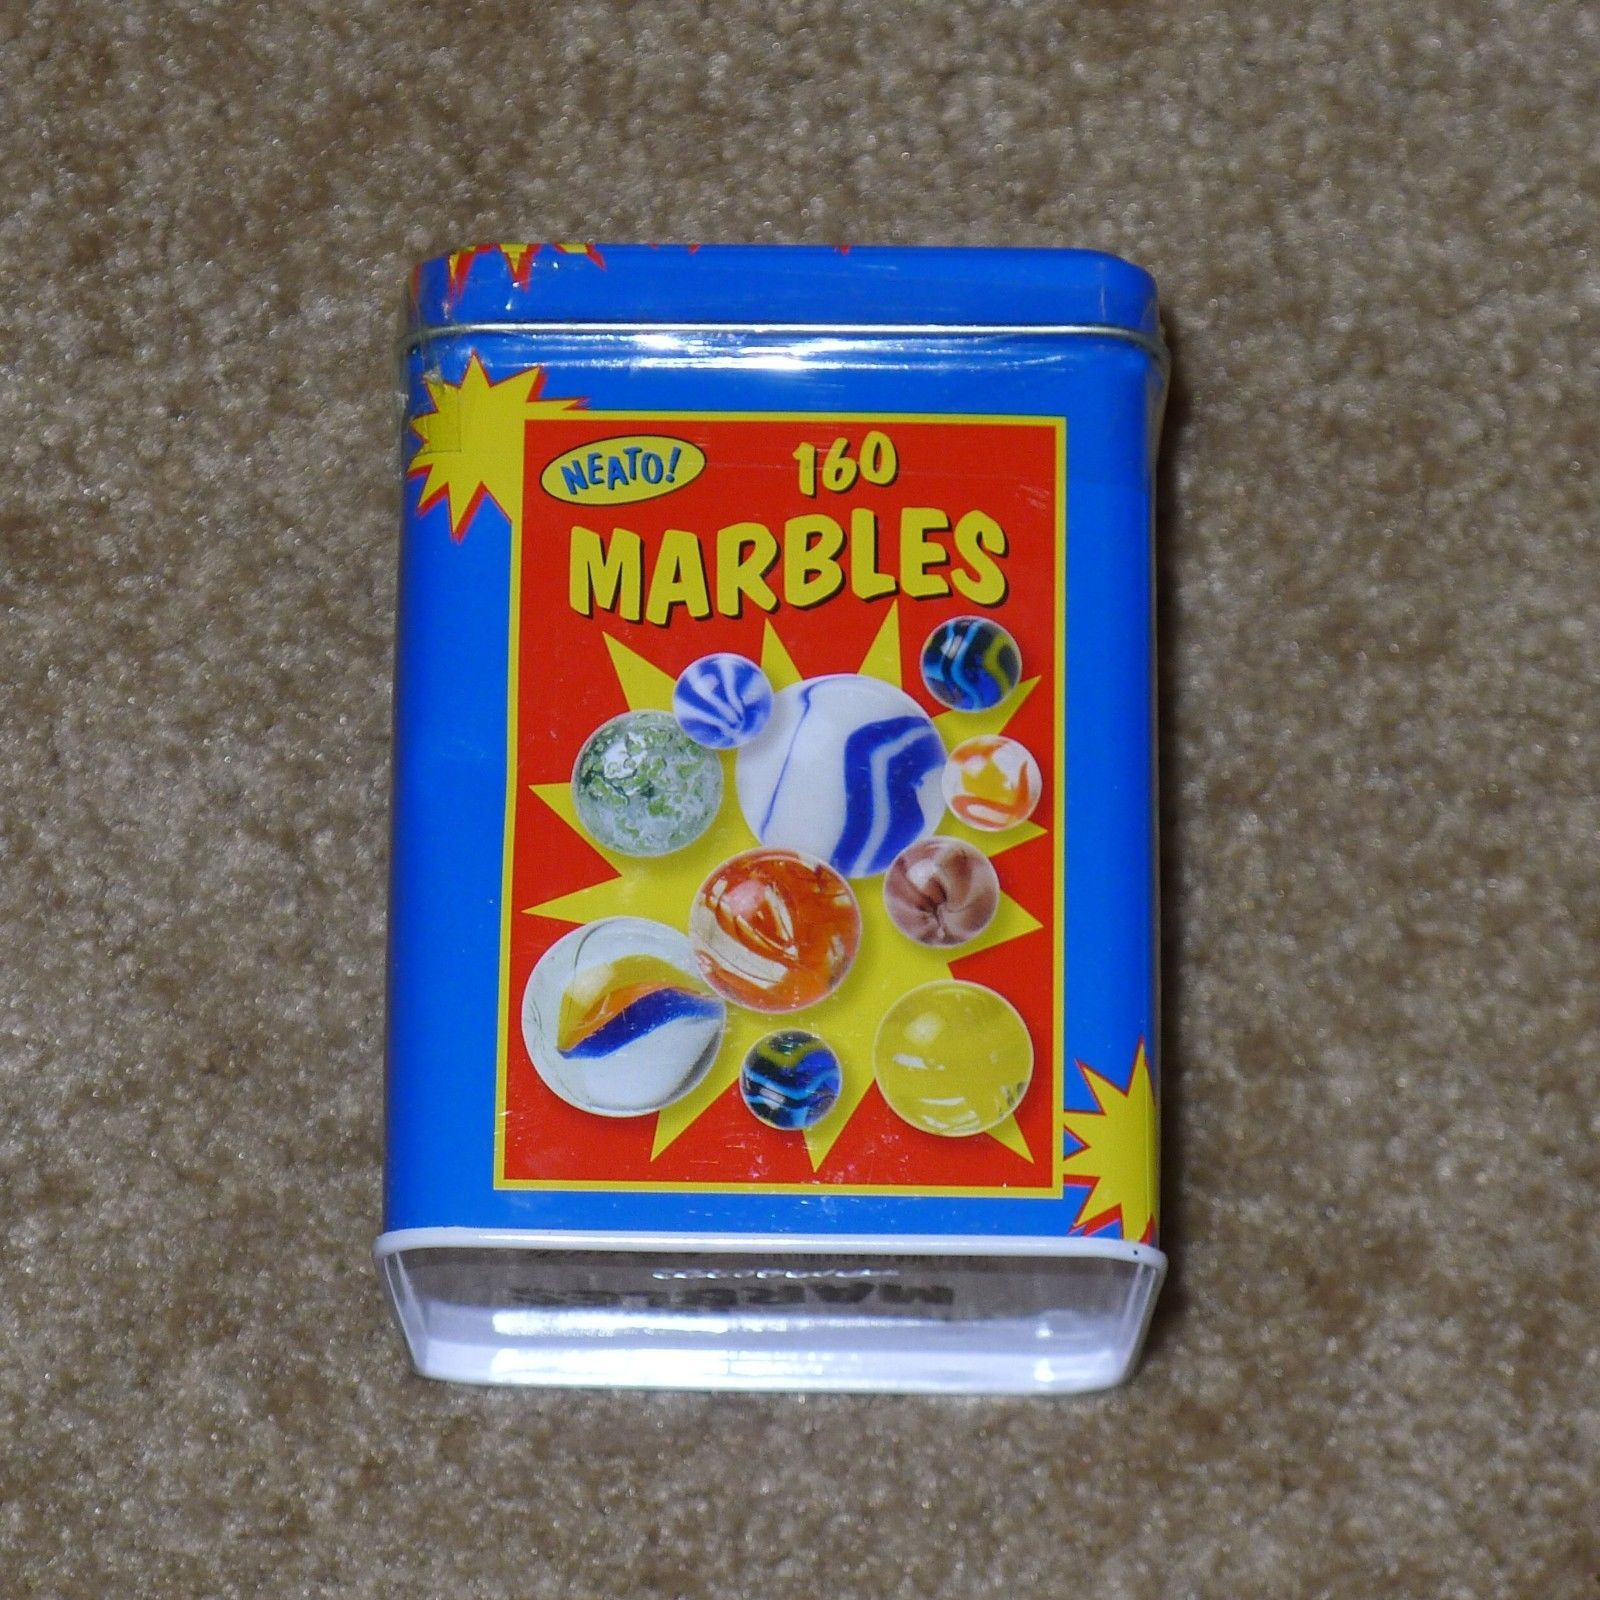 Primary image for NEW Marbles in a Tin Box, 160-Piece NEATO